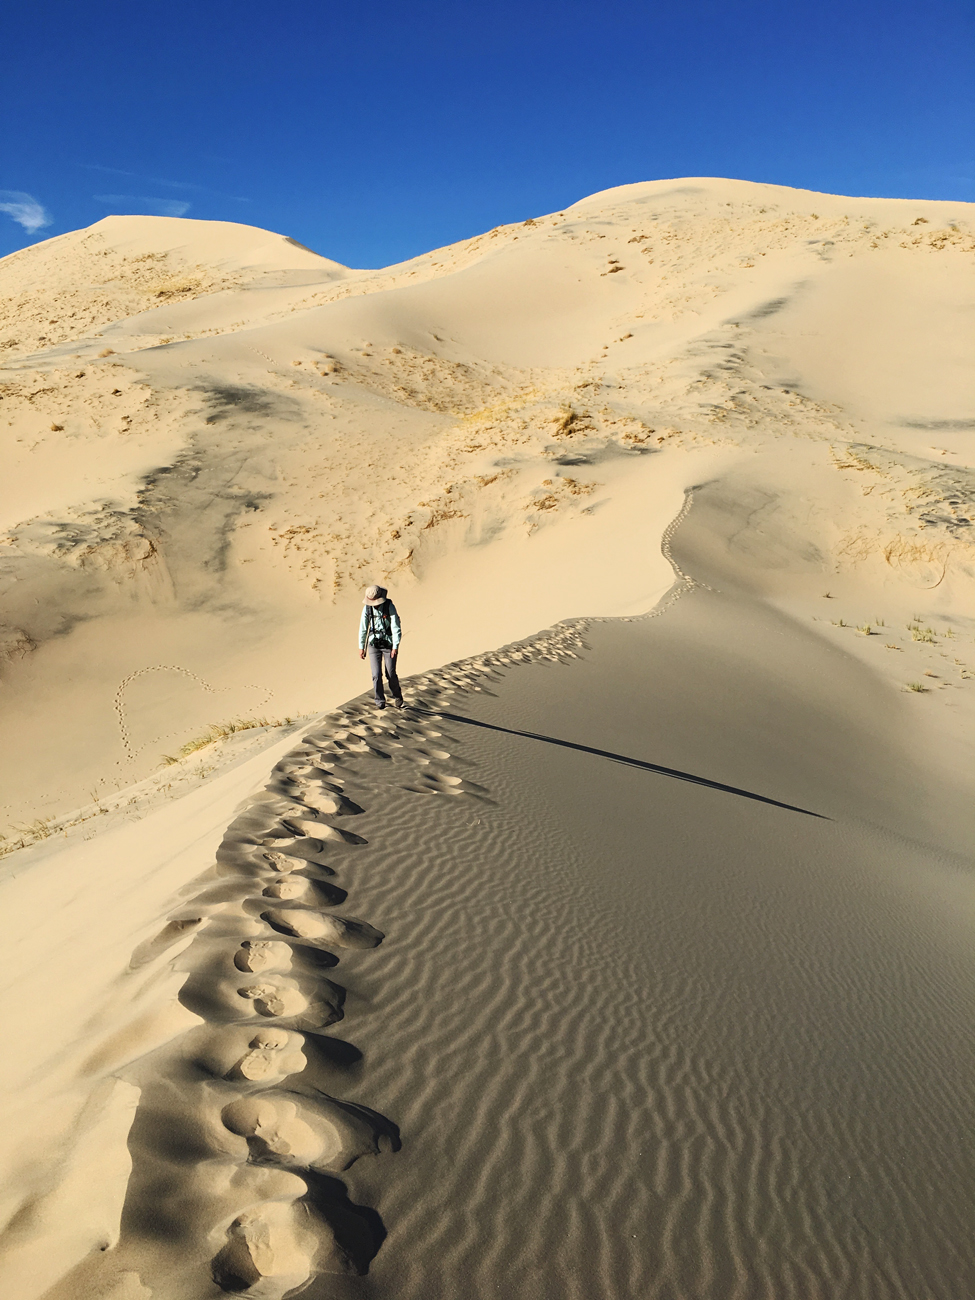 Christina slogging through the sand on the peak of one of the dunes